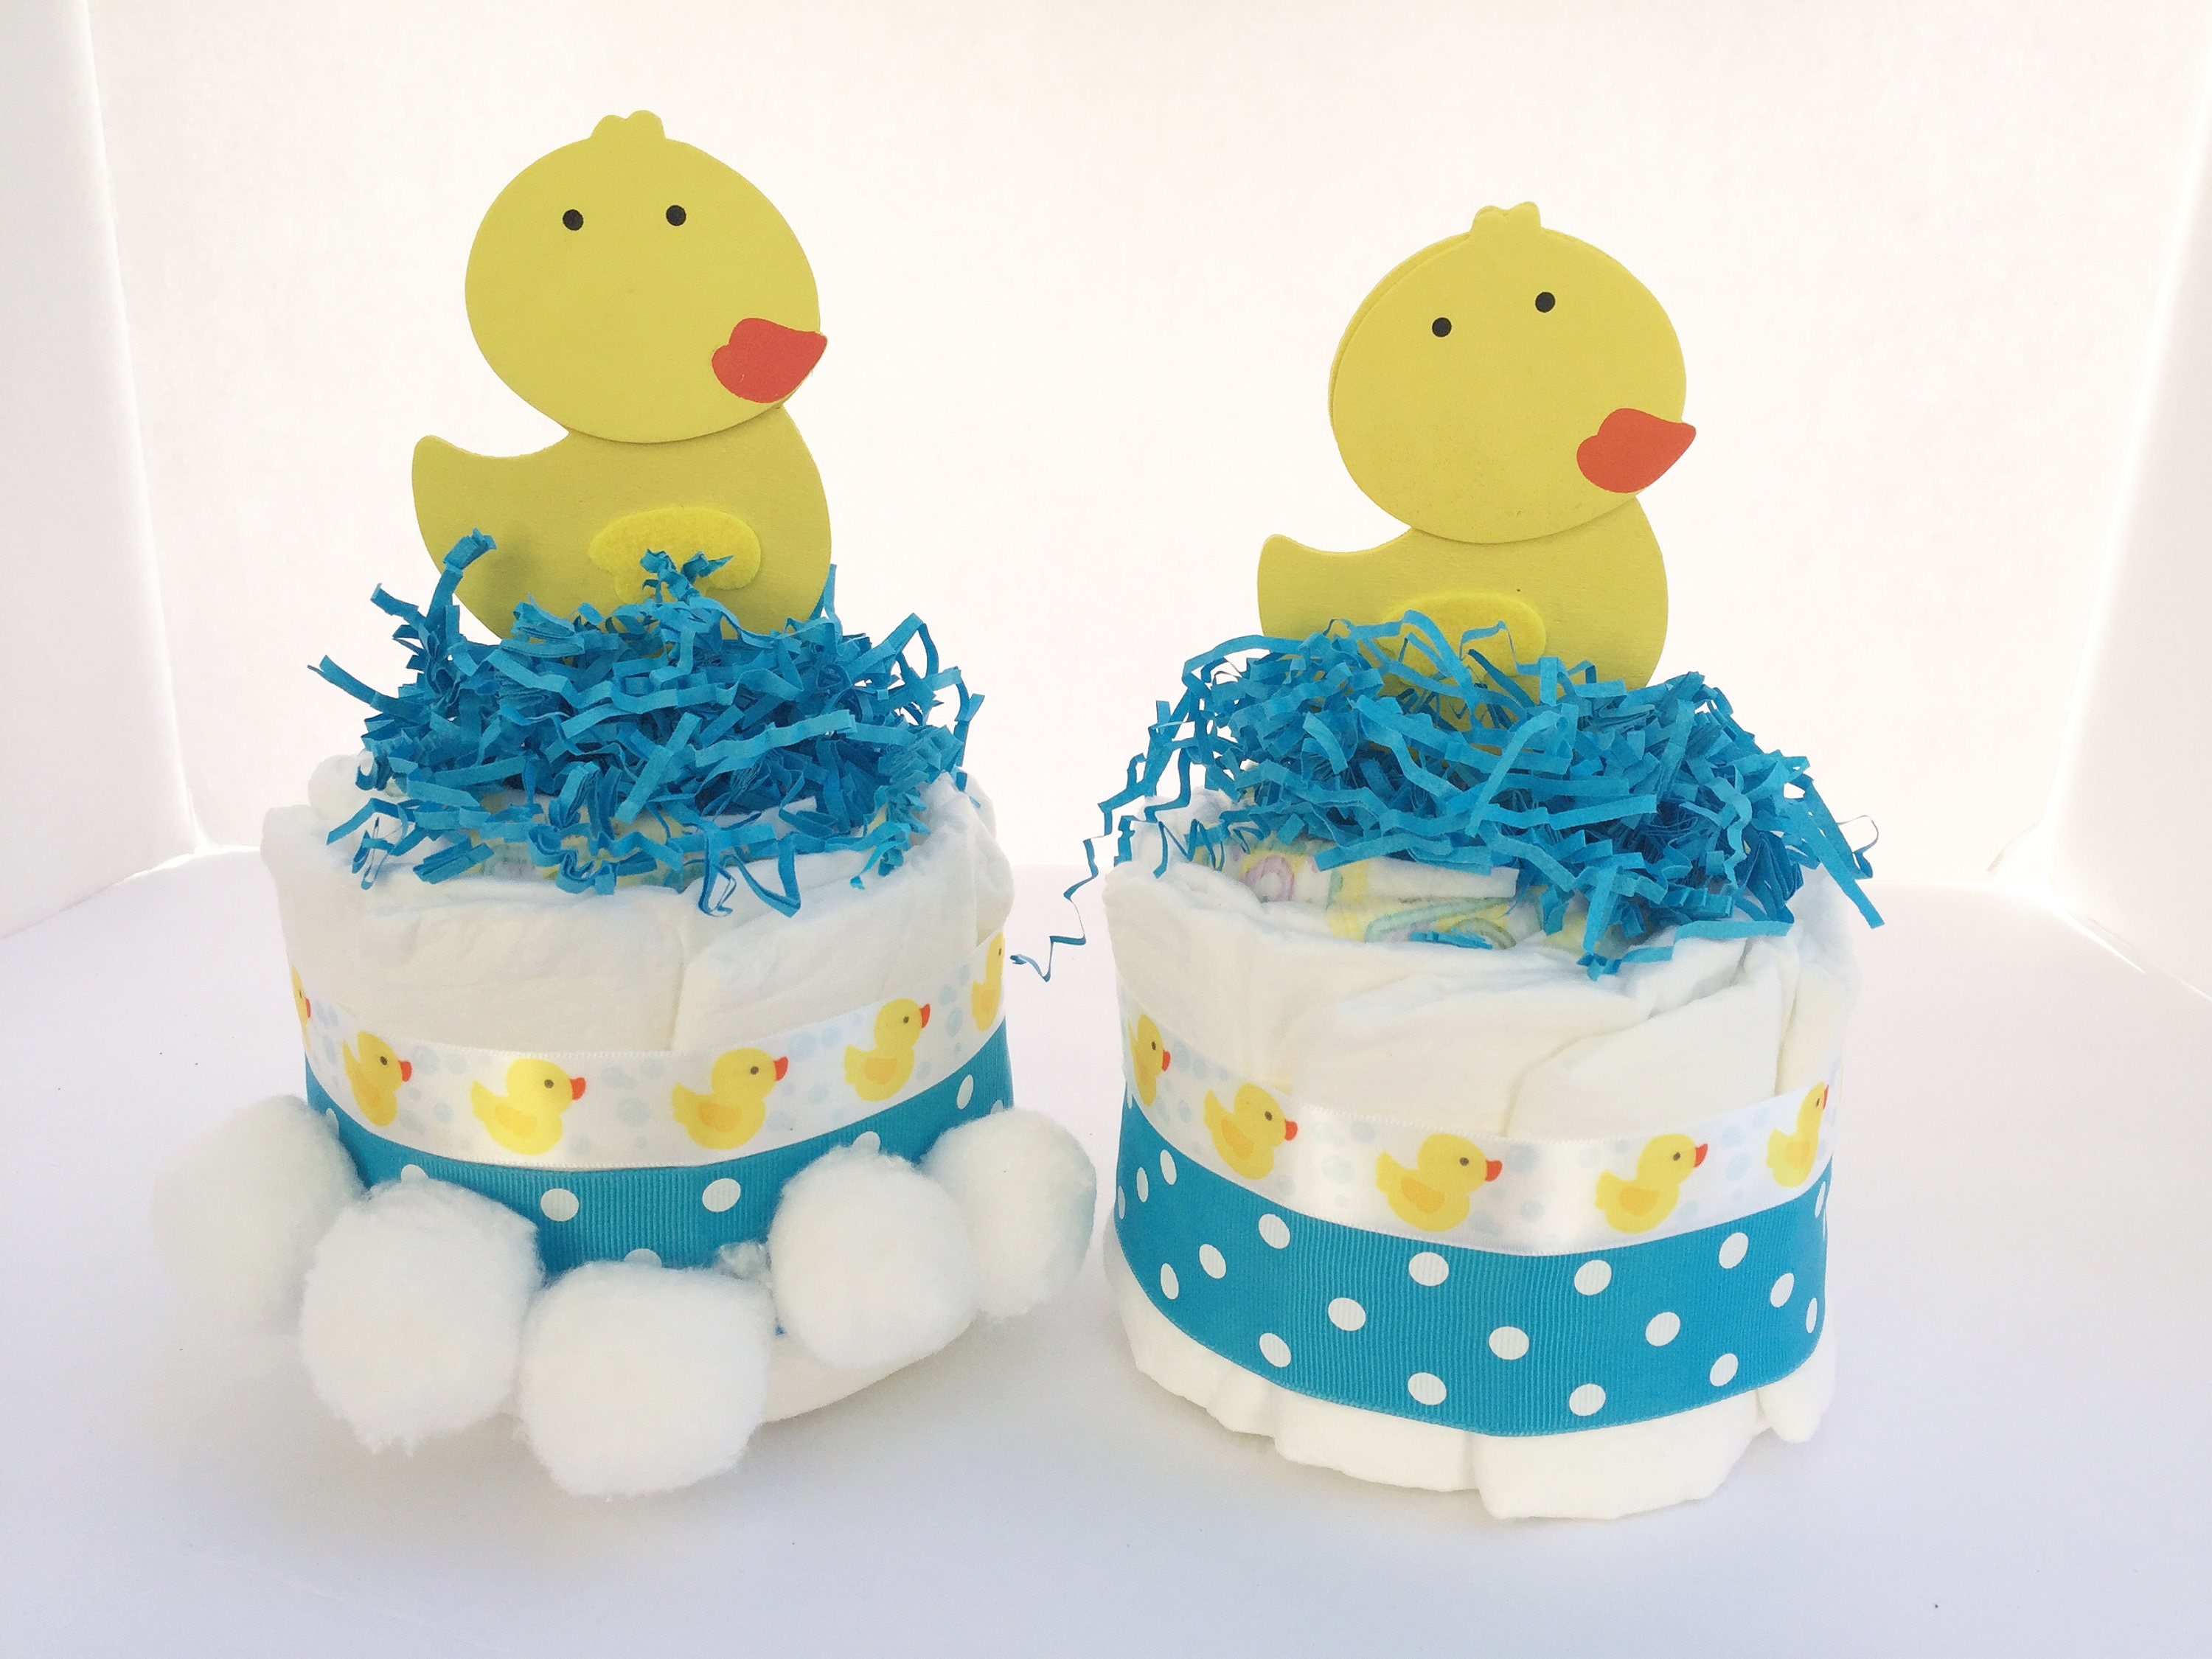 Newborn Baby Gifts, Duck Diaper Cake Centerpieces, Rubber Duck Theme Baby  Shower Decorations, Duck Table Centerpieces For Baby Showers